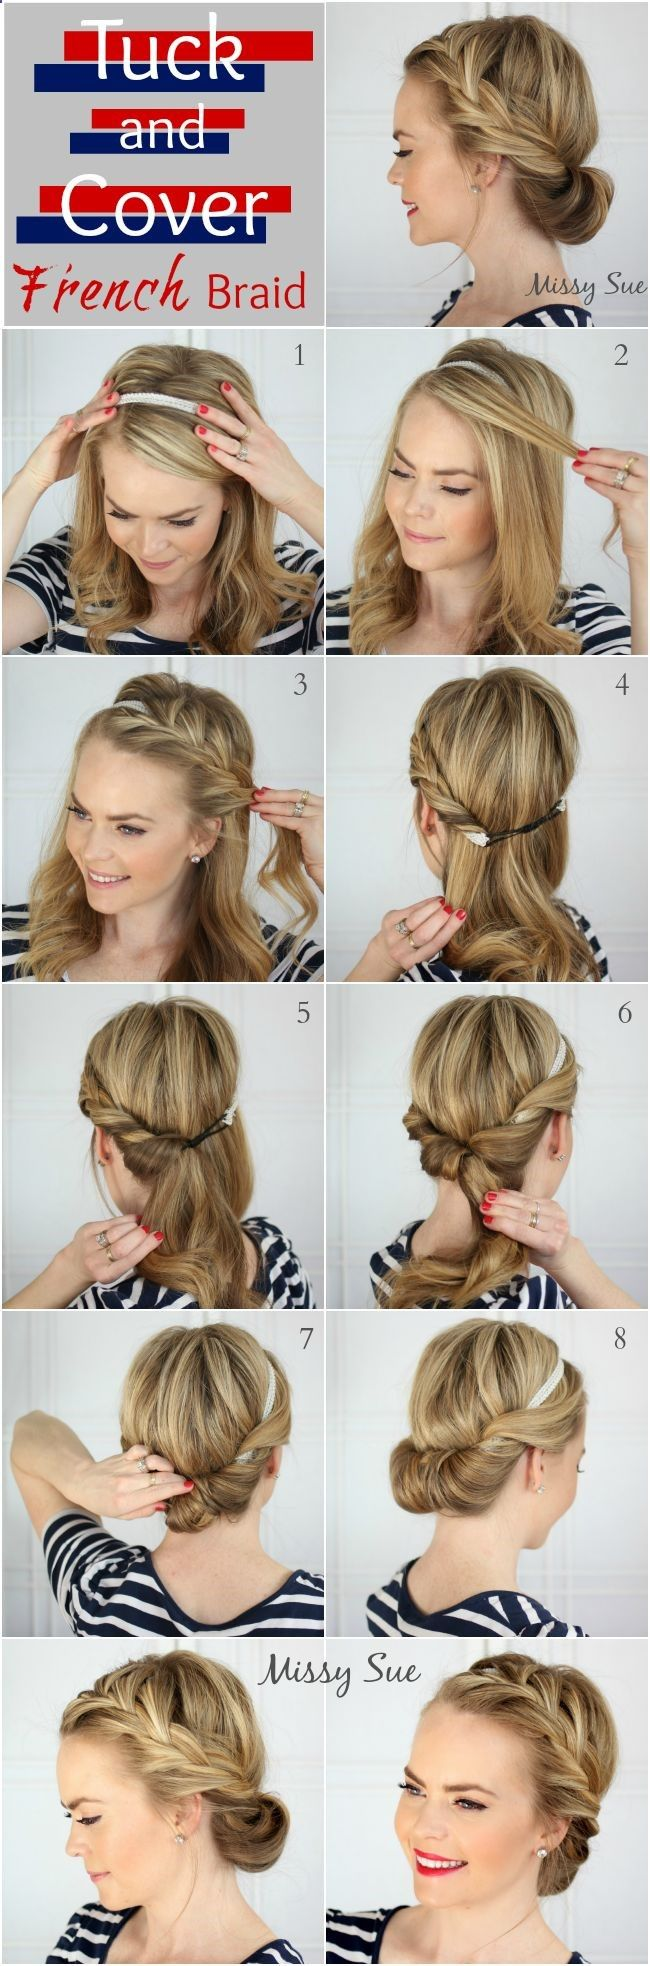 10 Easy Hairstyles For Bangs To Get Them Out Of Your Face | HAIR ...